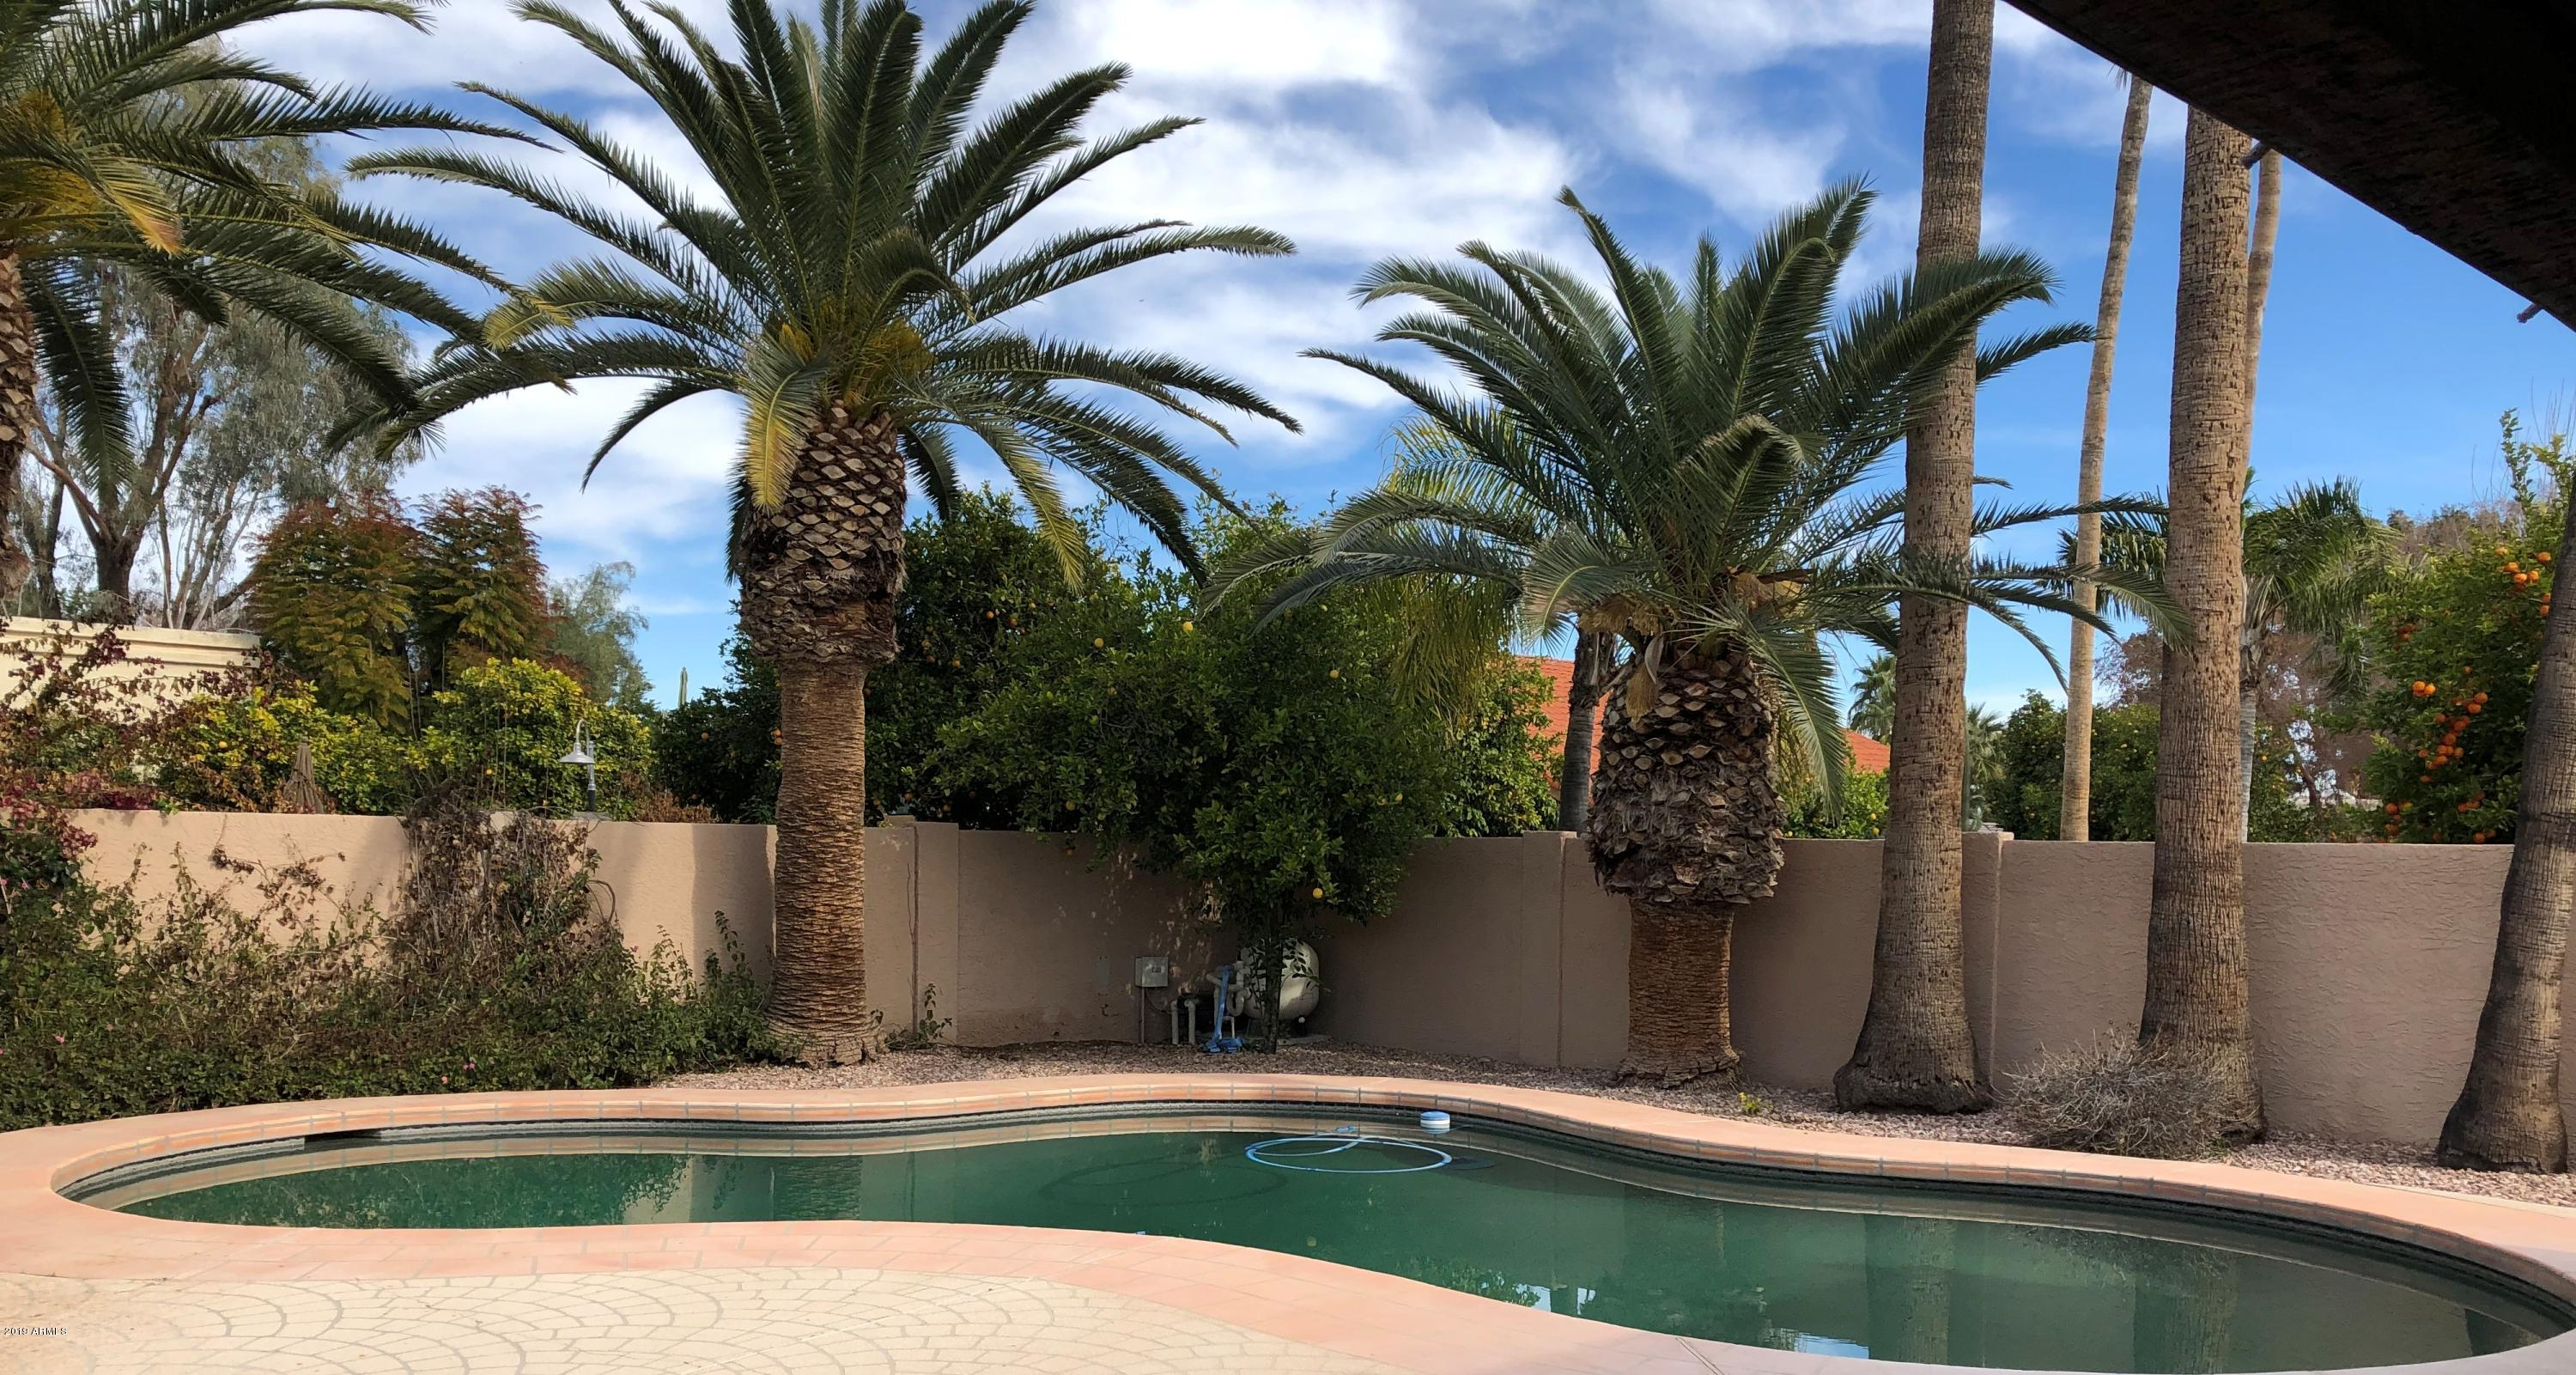 MLS 5877109 7408 E ARLINGTON Road, Scottsdale, AZ 85250 Scottsdale AZ Private Pool